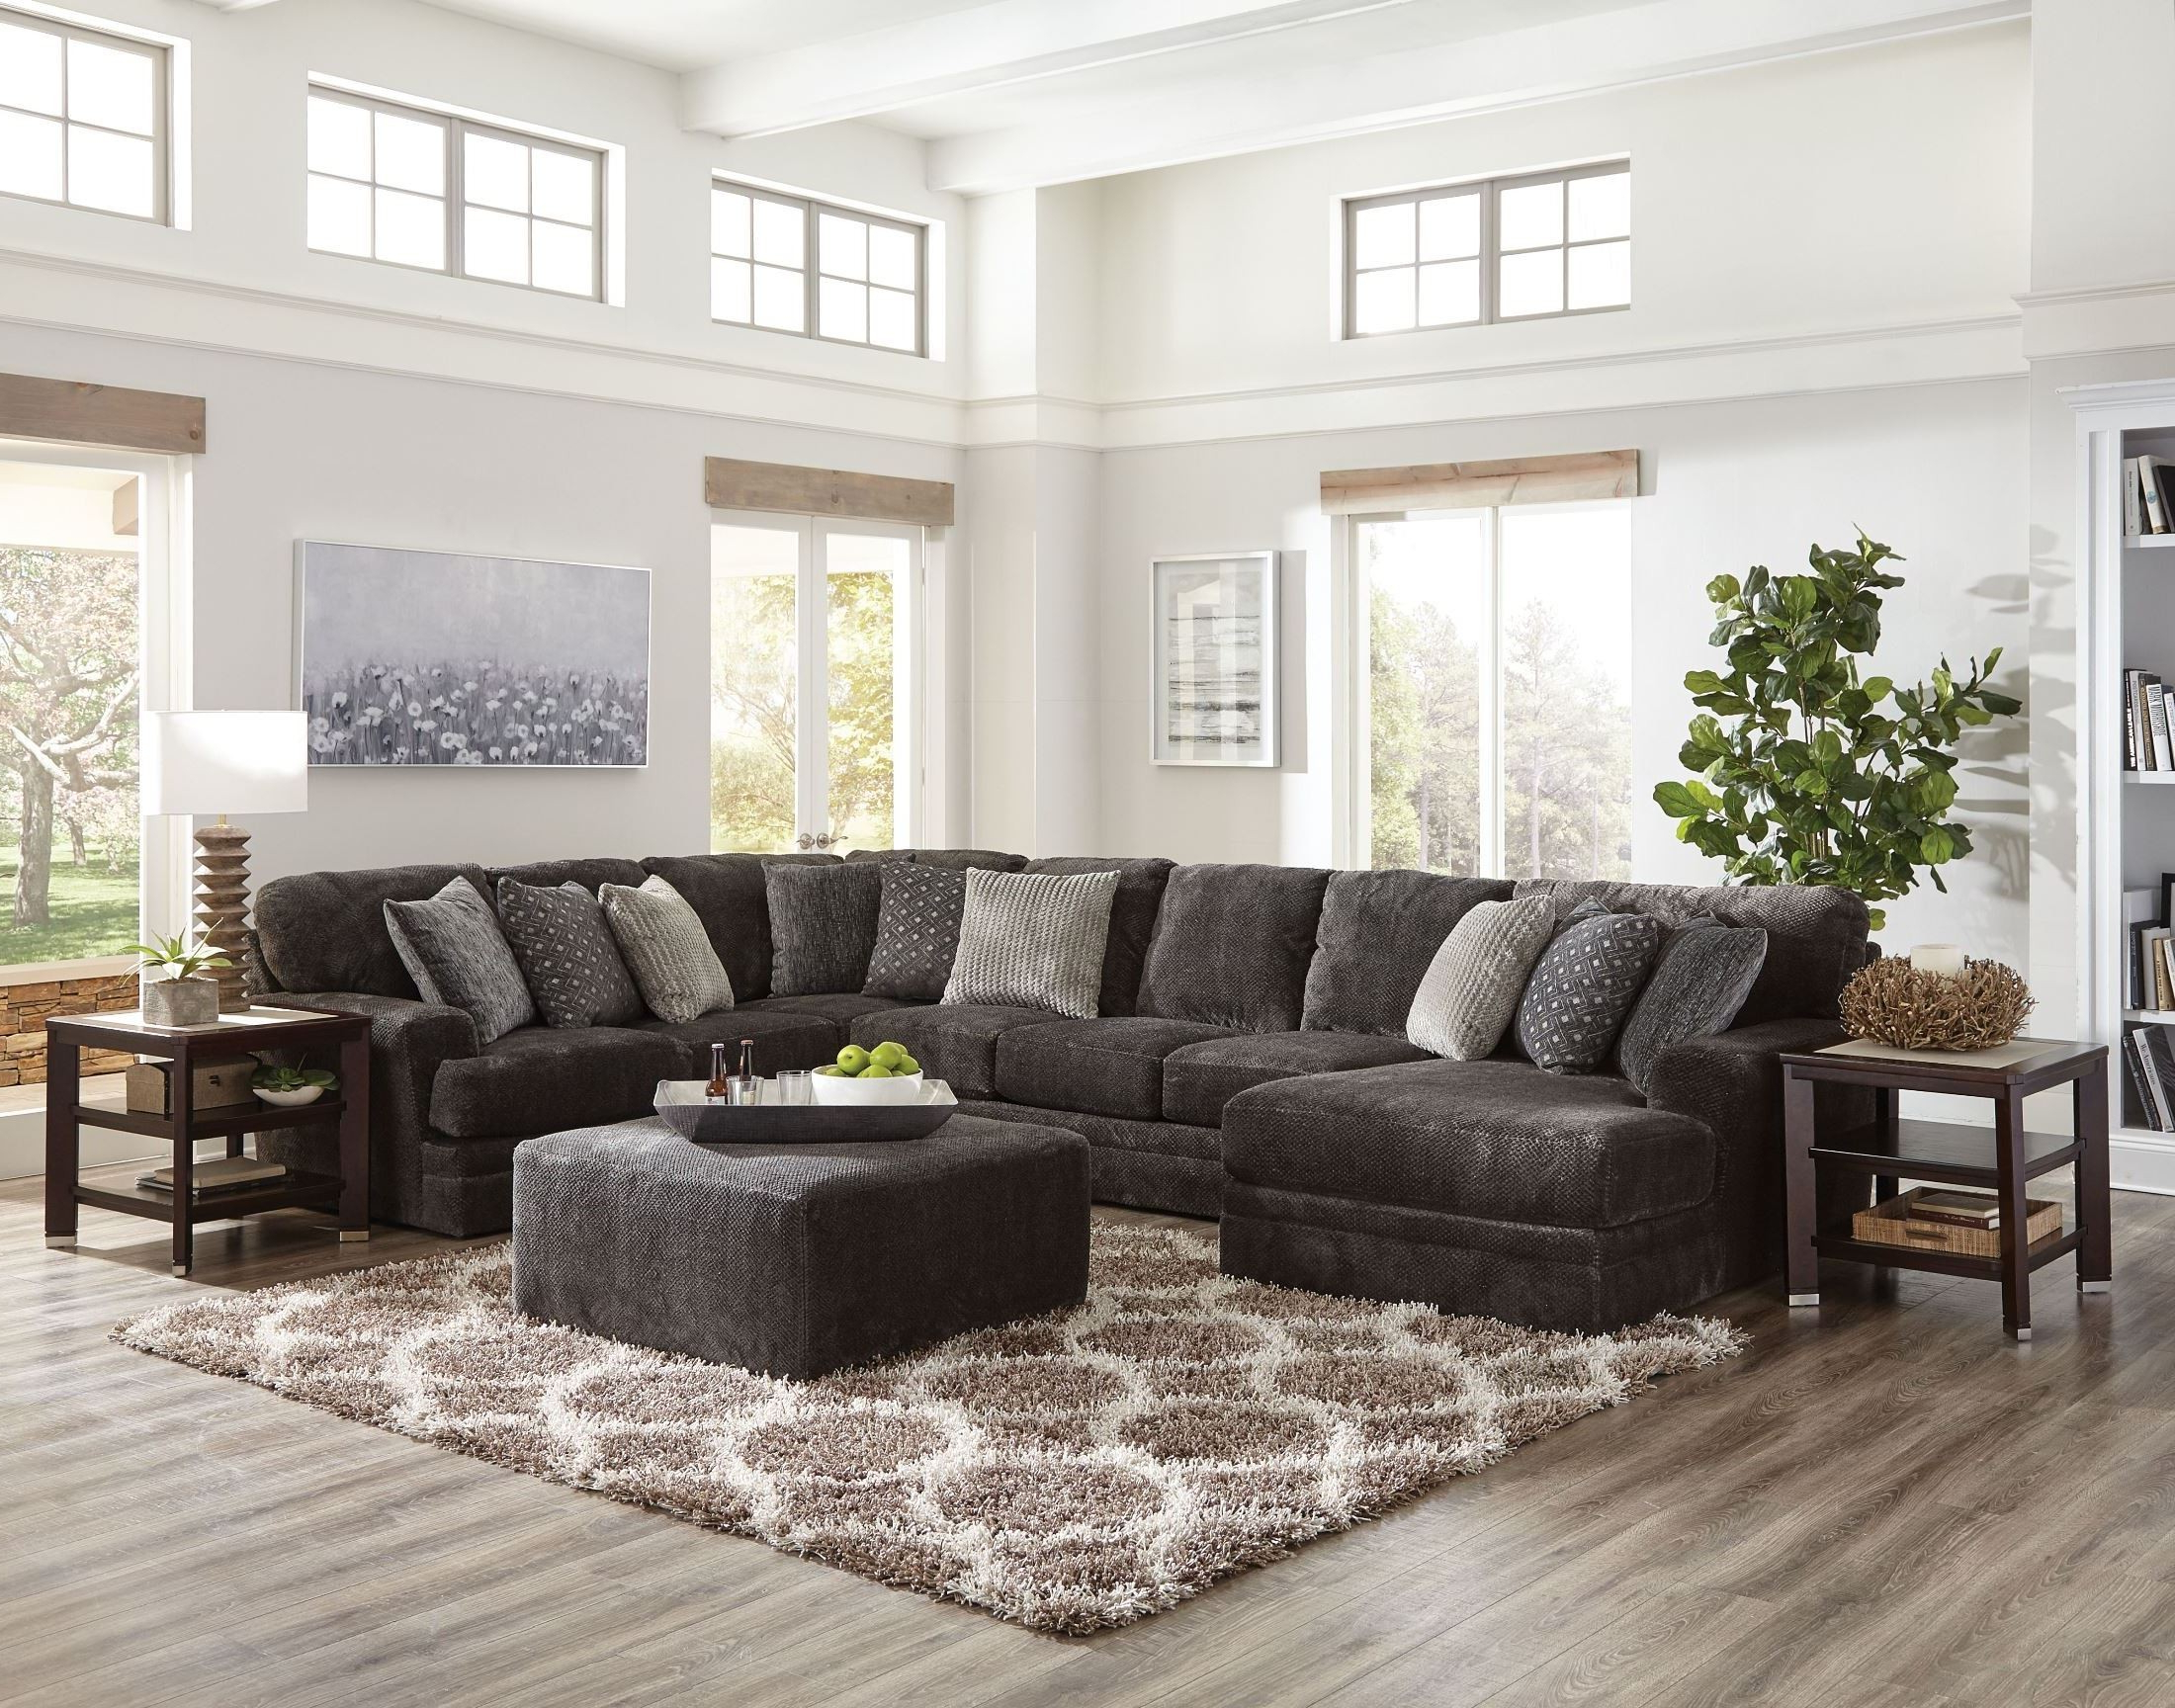 Coleman Furniture (View 4 of 20)